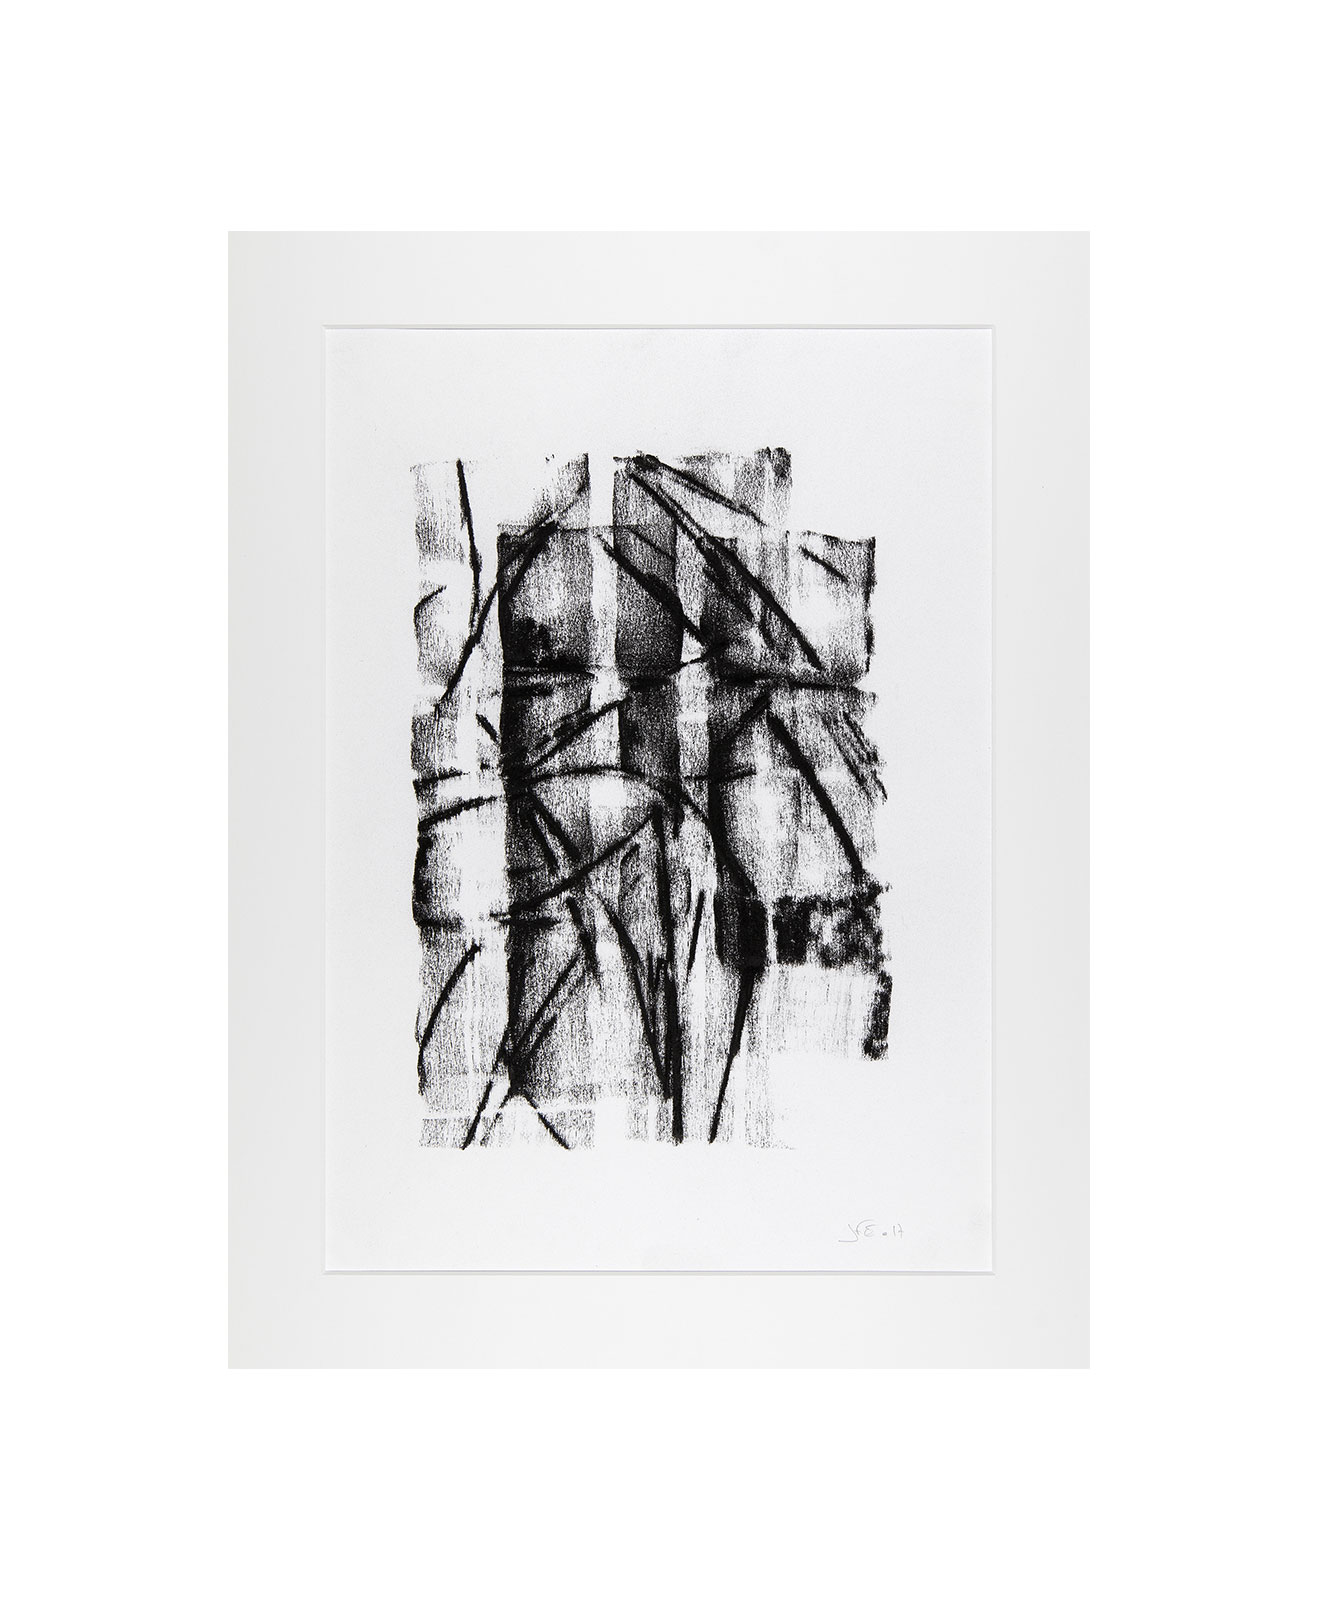 Cha 1.7, Charcoal on paper, black and white artwork, drawing, jf escande, contemporary art